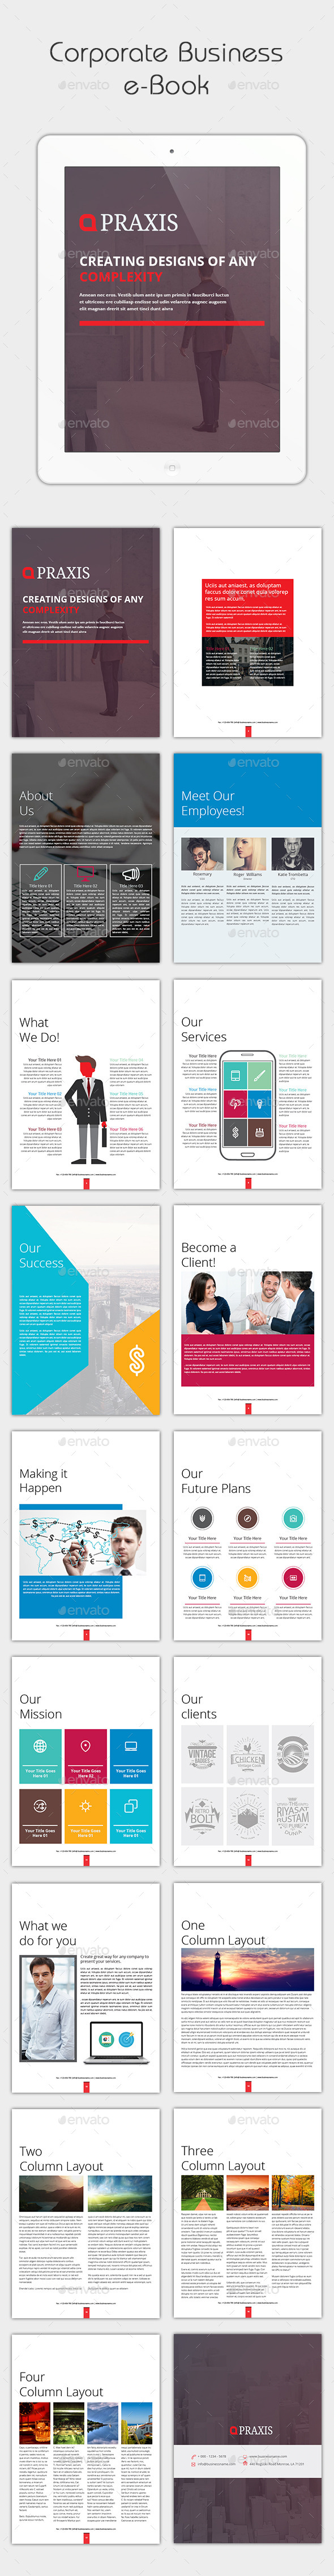 GraphicRiver Corporate Business e-Book 11251104